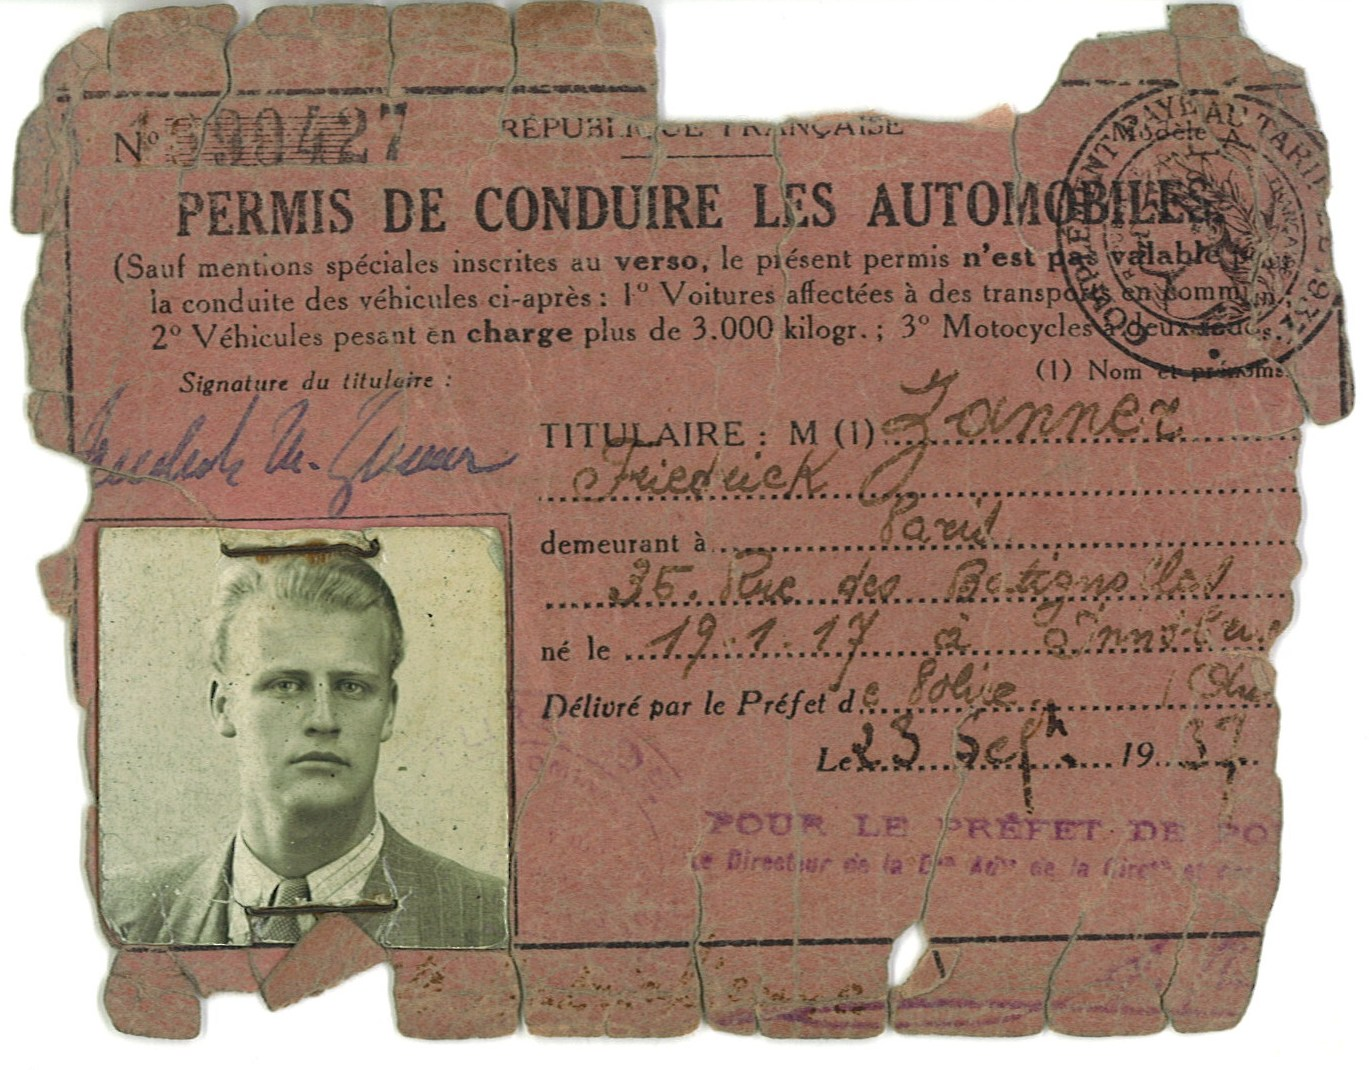 Copy of Friedrich Zanner's driver's license, on display at the Charell exhibition in Neustrelitz.